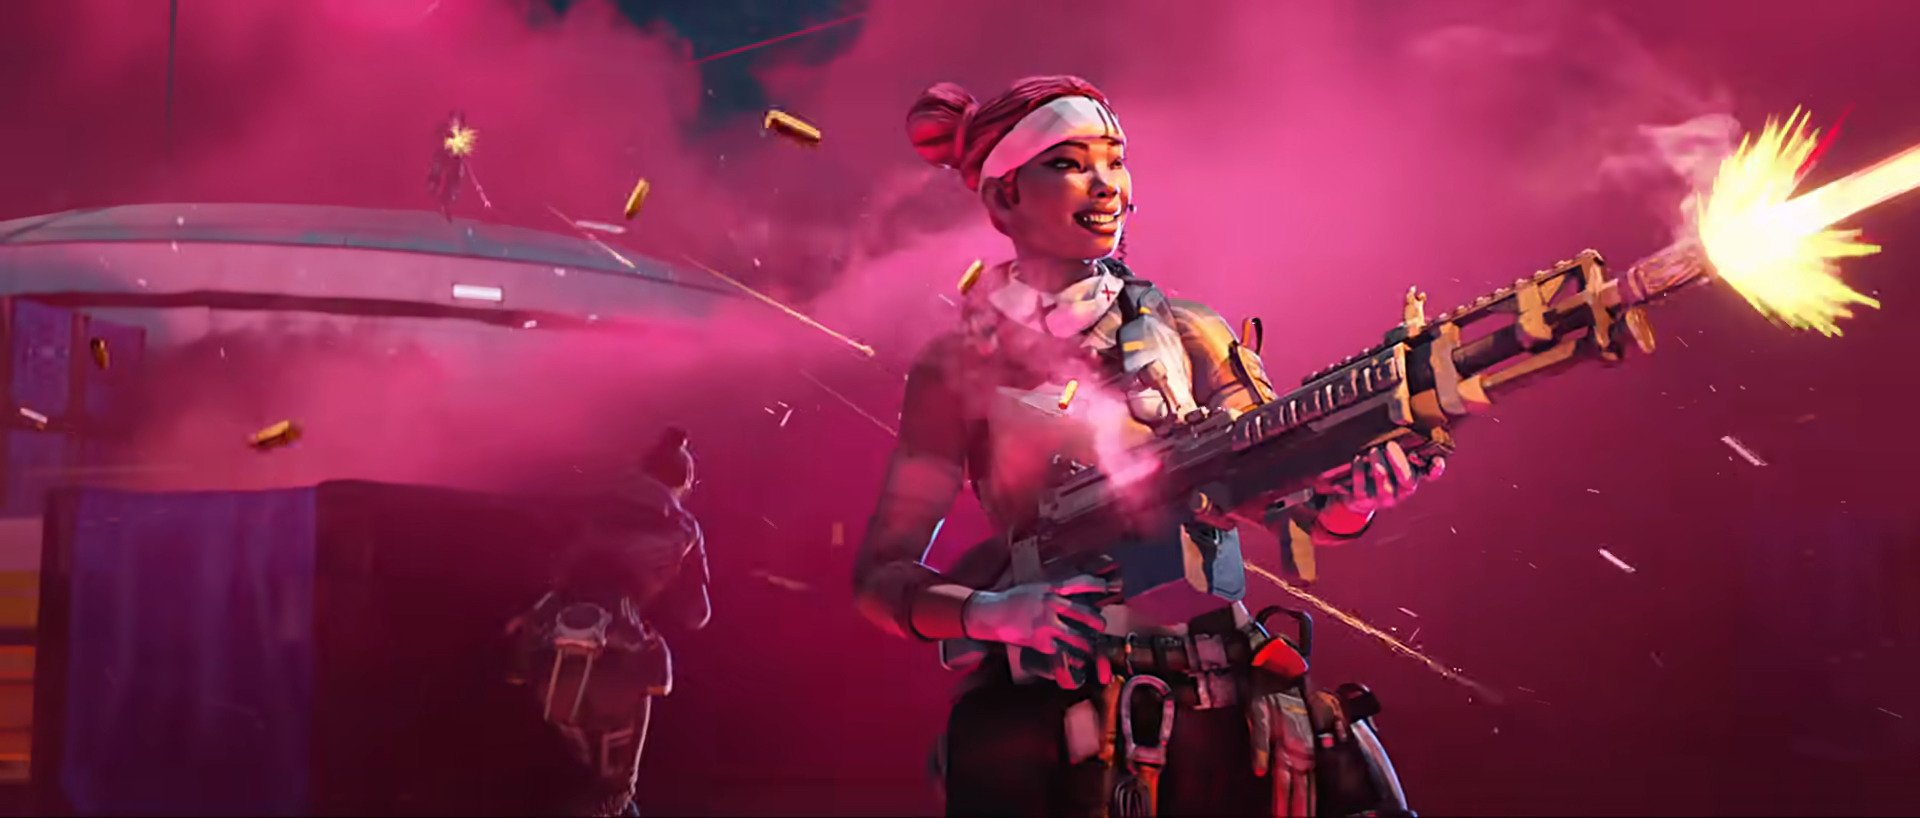 Apex Legends Available Now On Steam While 419 Top Players Banned For Smurfing Exploits